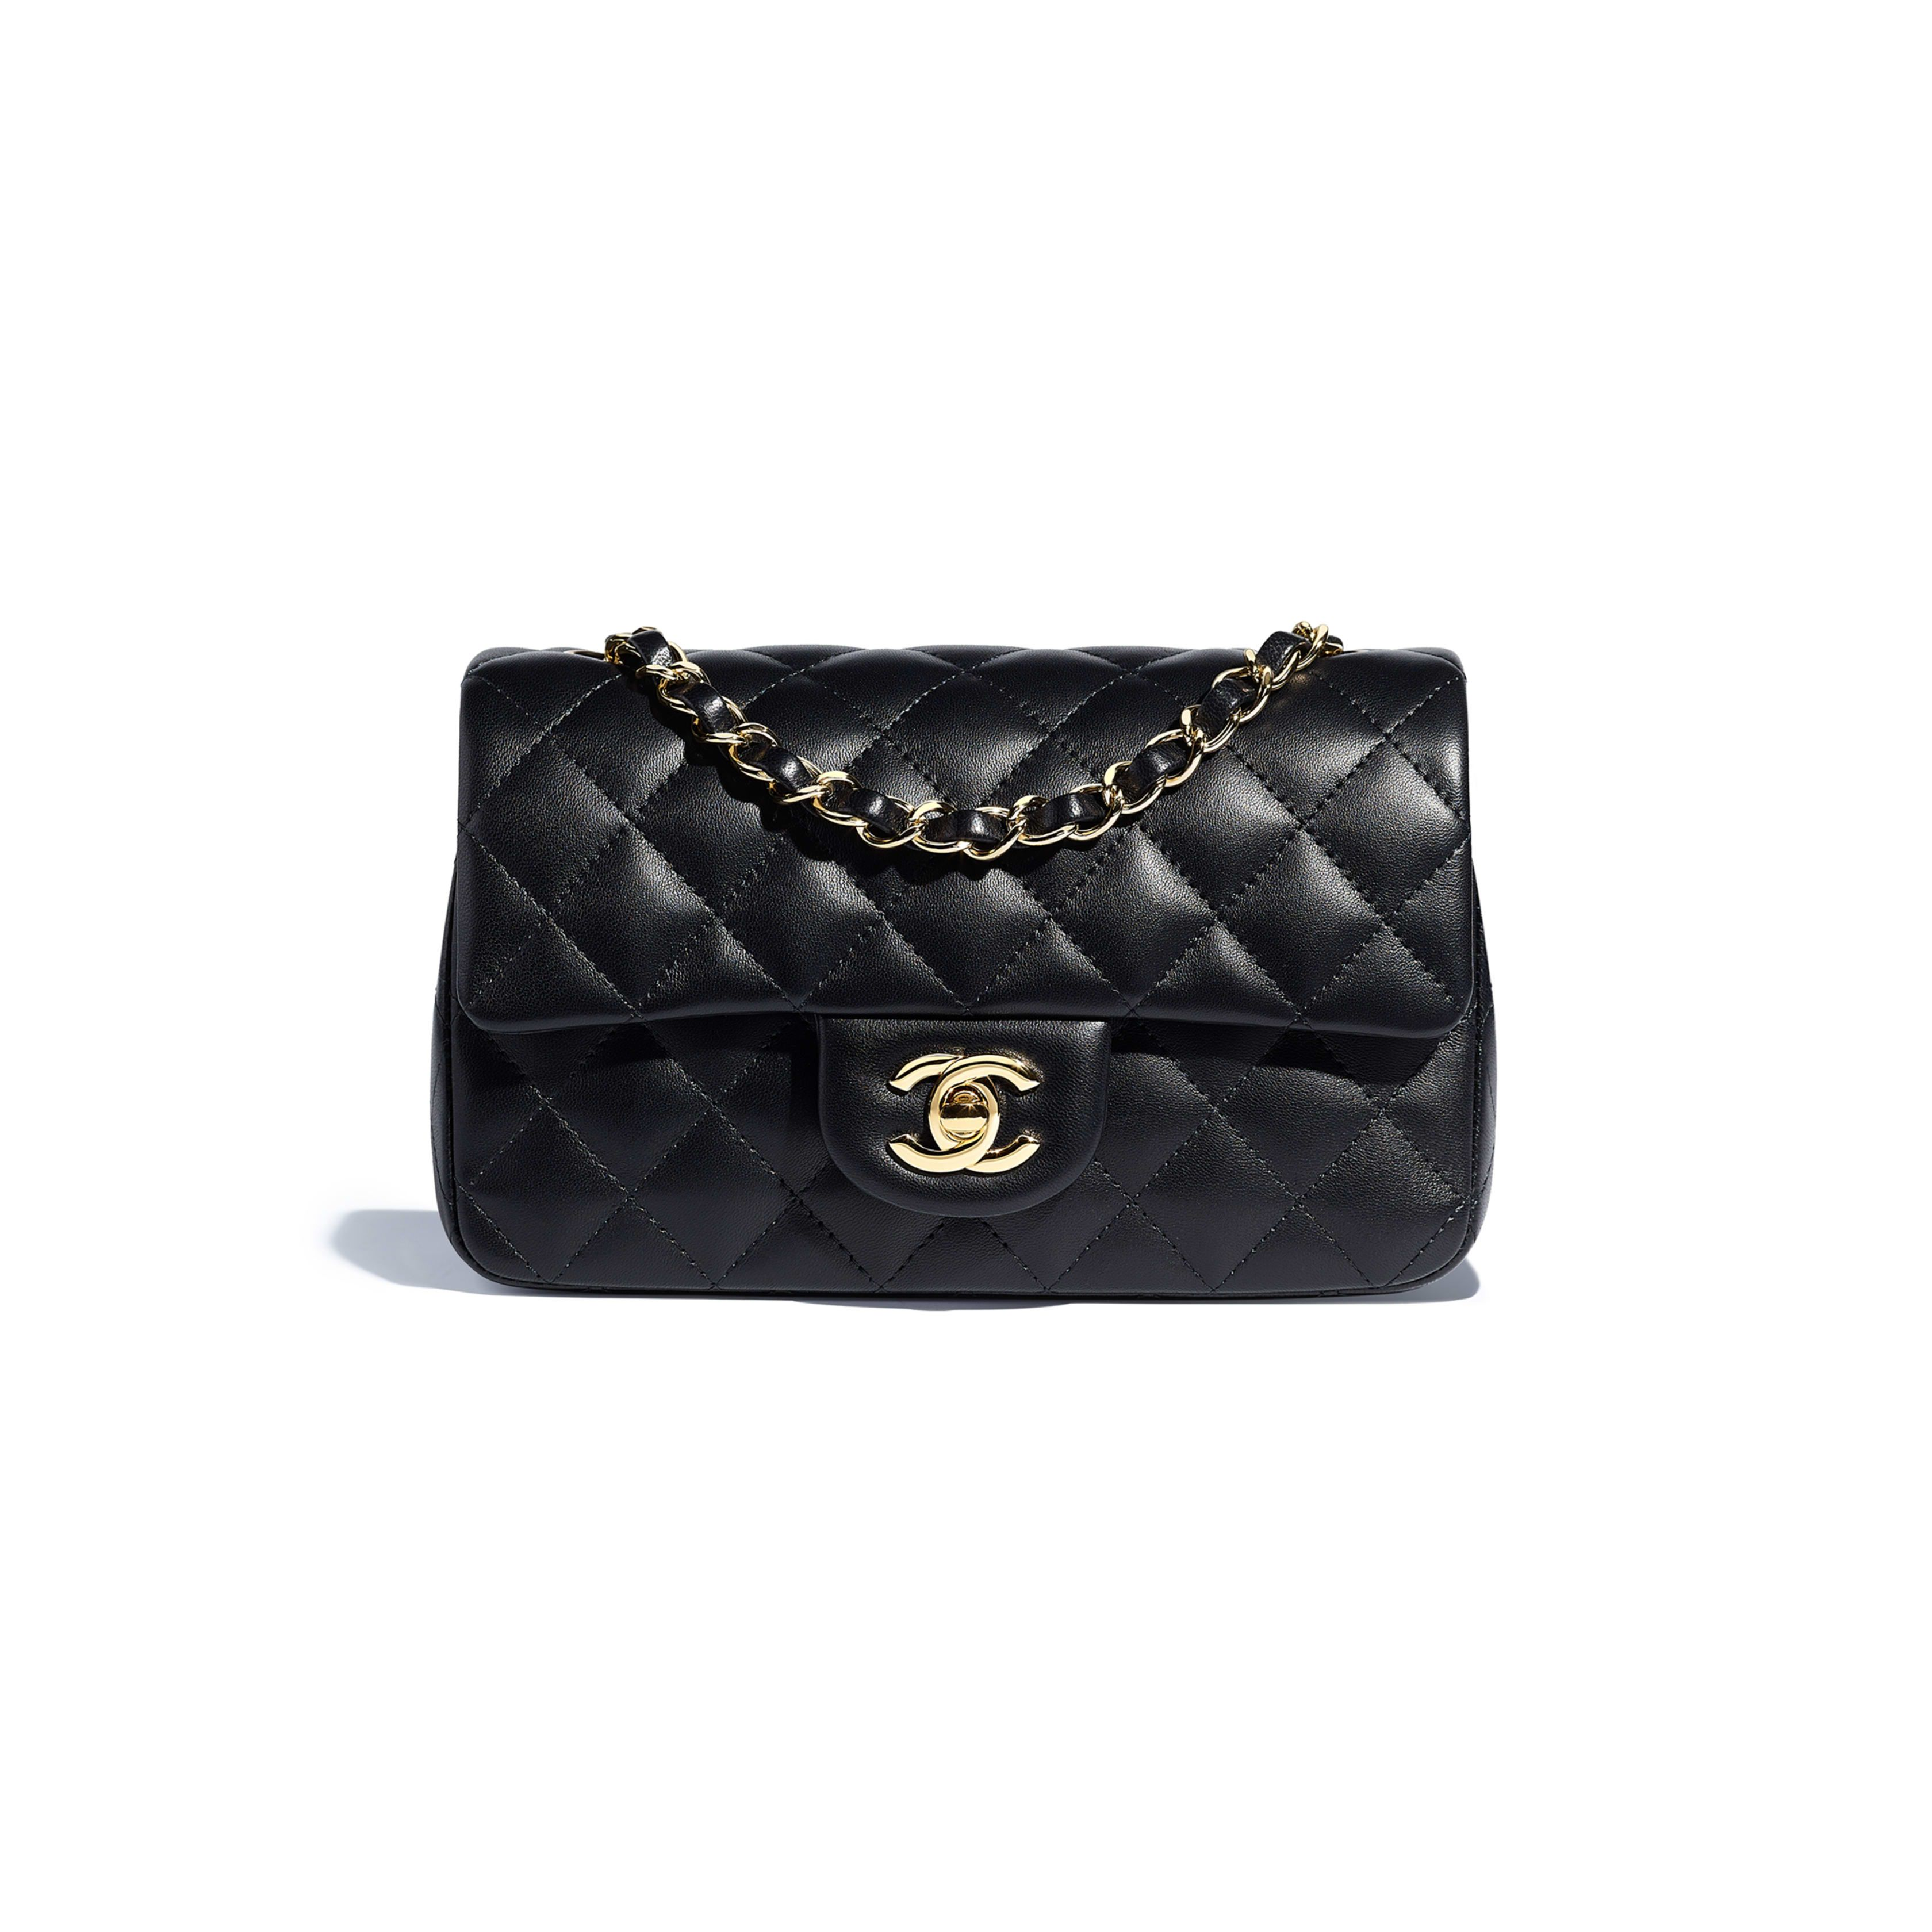 9948ce0ee6084 Mini Flap Bag - Black - Lambskin & Gold-Tone Metal - Default view - see  full sized version